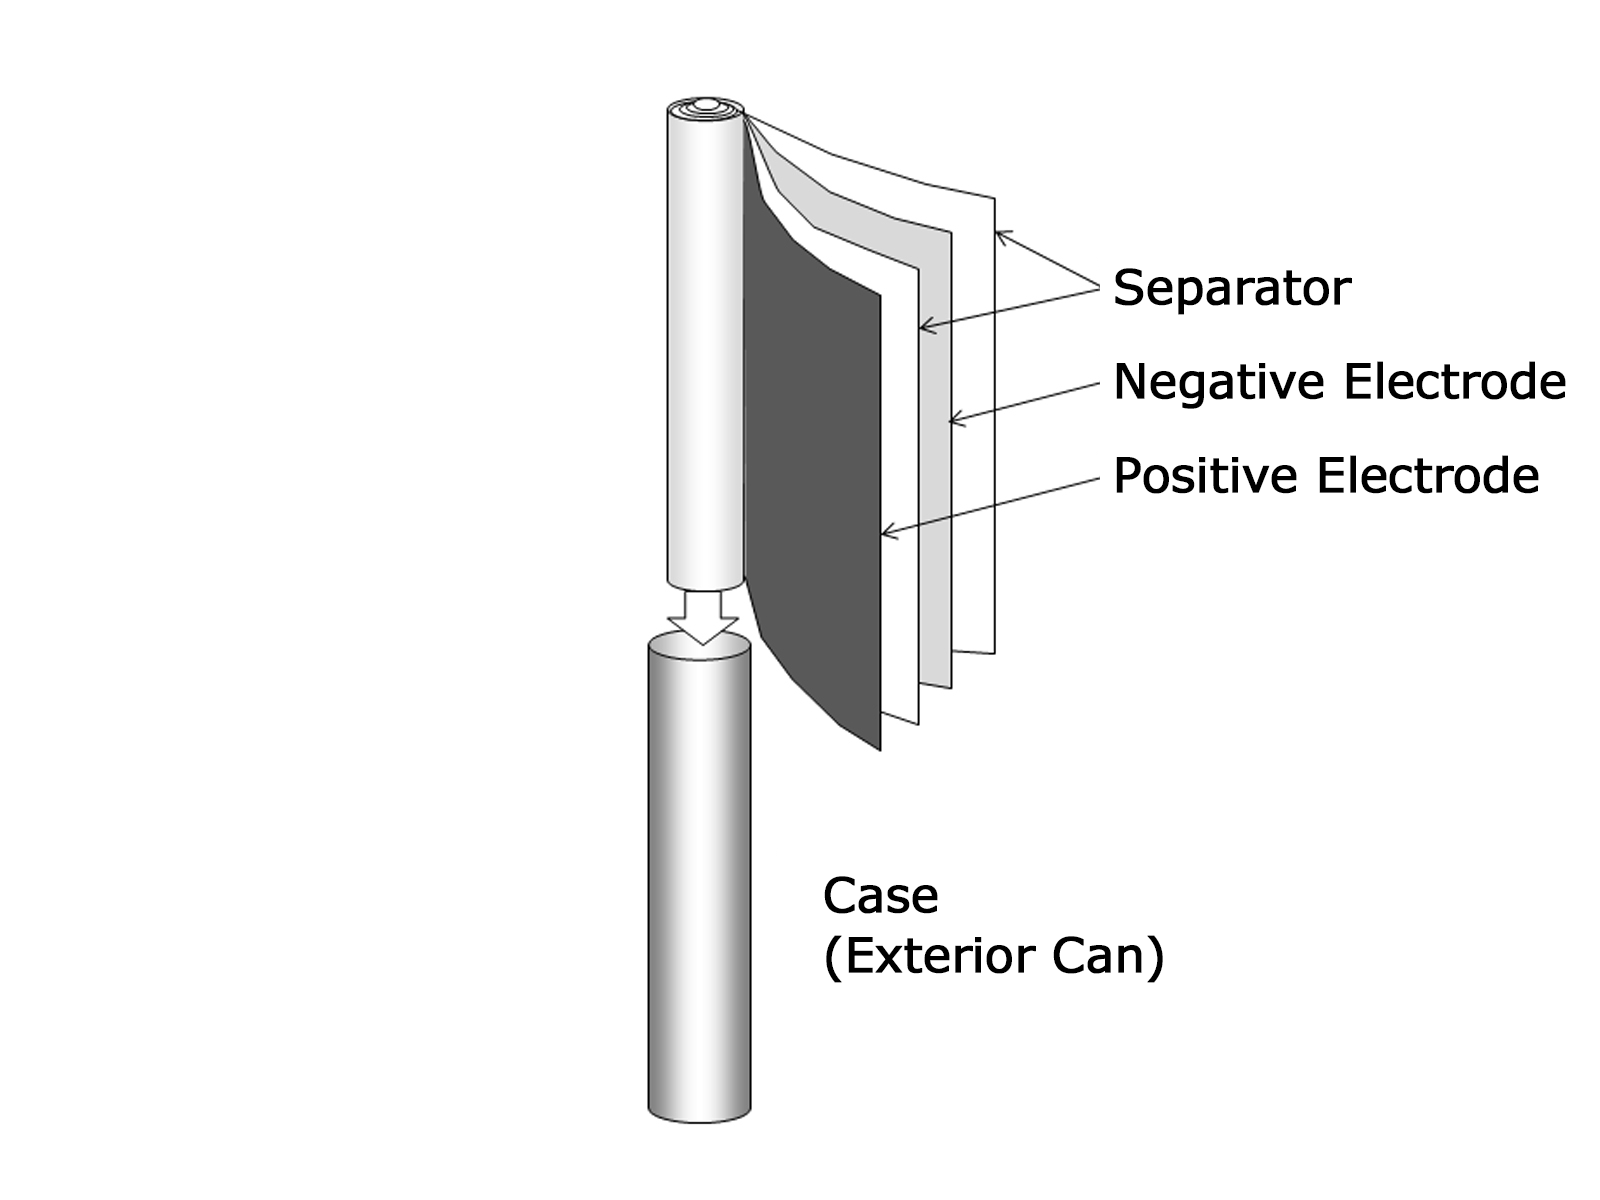 Panasonic - Smallest Lithium Ion Battery - Structure